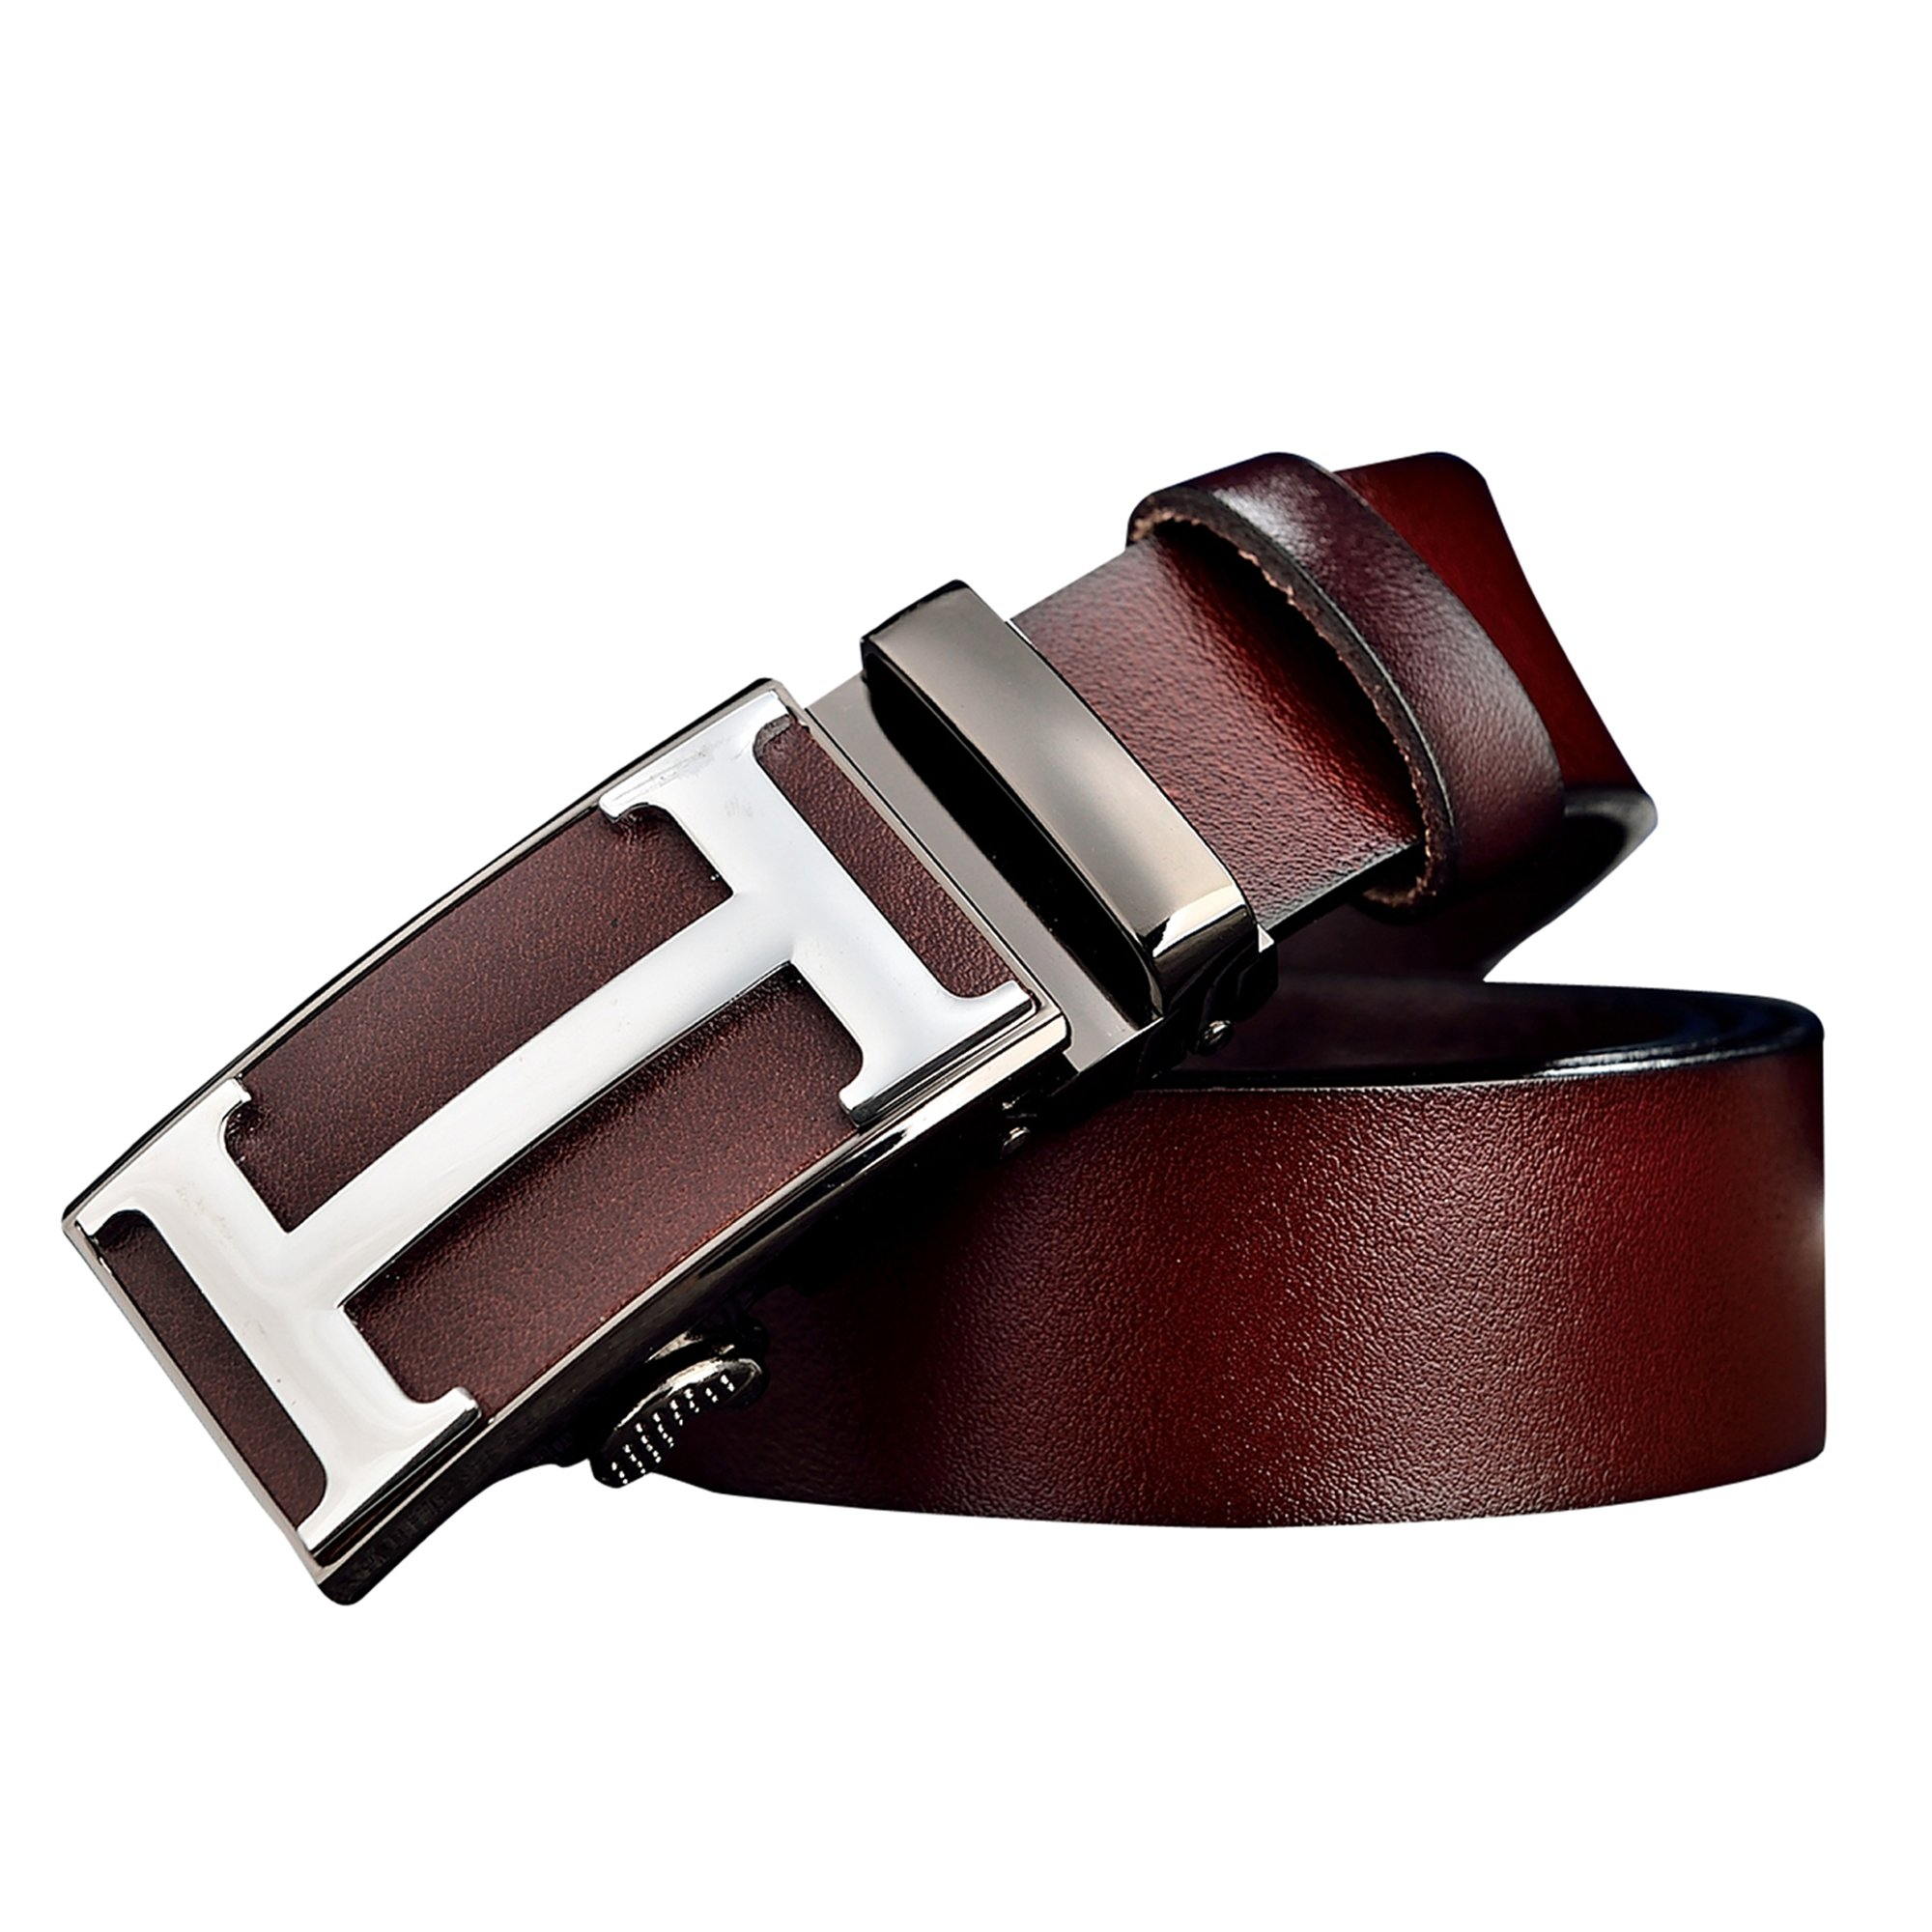 Menschwear Men's Geninue Leather Belt Adjustable Waistband with Automatic Buckle 35MM Coffee120cm